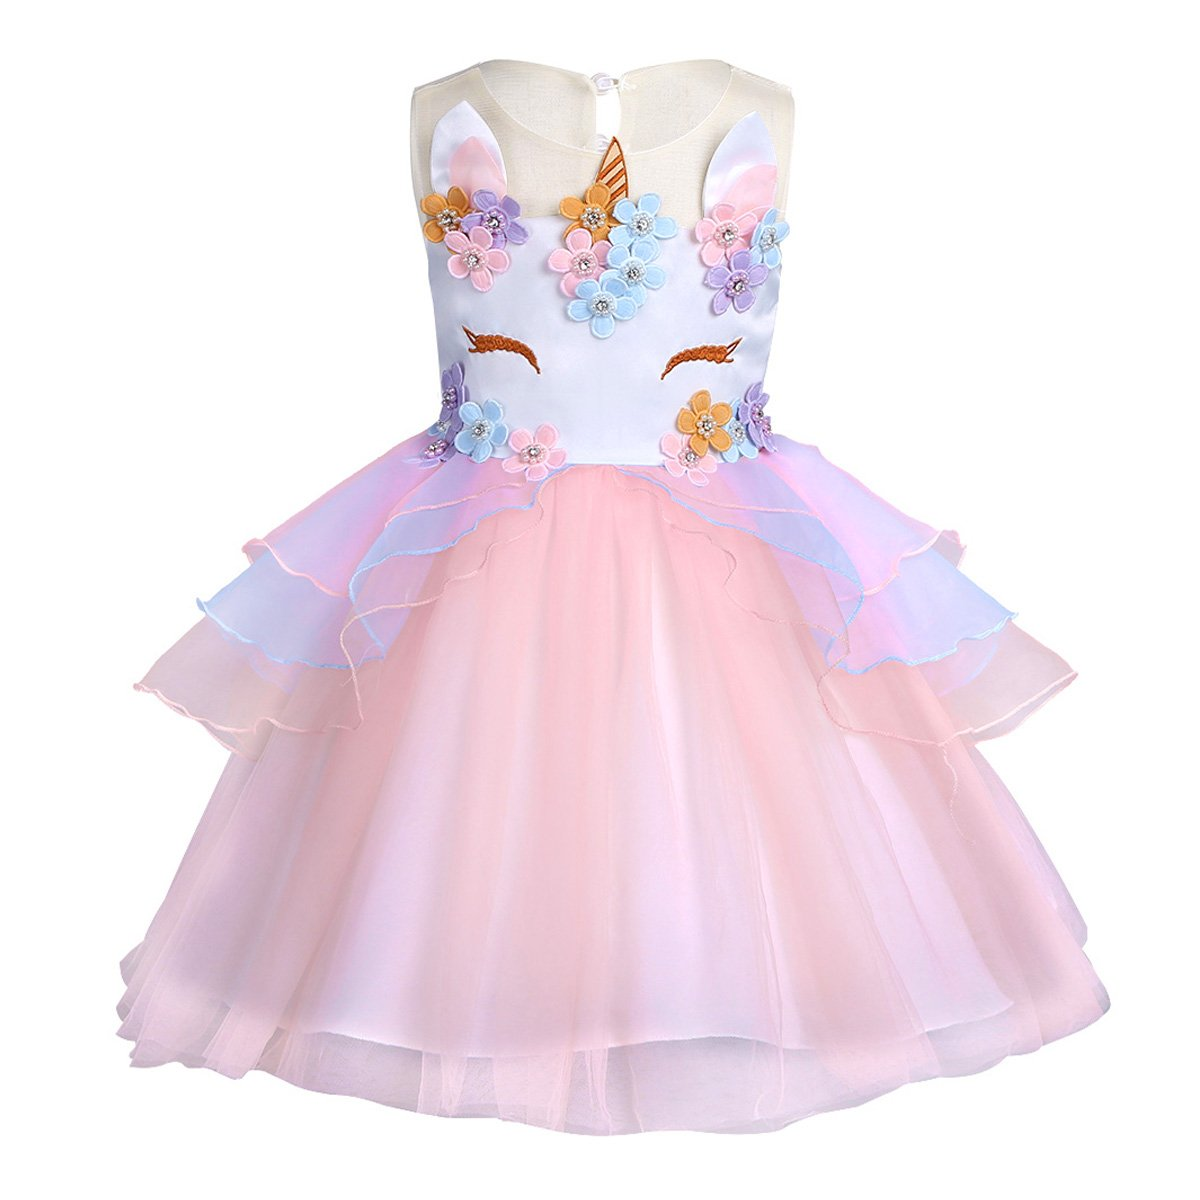 CHICTRY BABY_COSTUME ベビーガールズ CHICTRY 12-24 12-24 Months B07C5NLB2D Apricot-pink B07C5NLB2D, マルモ森商店:8499a398 --- capela.dominiotemporario.com